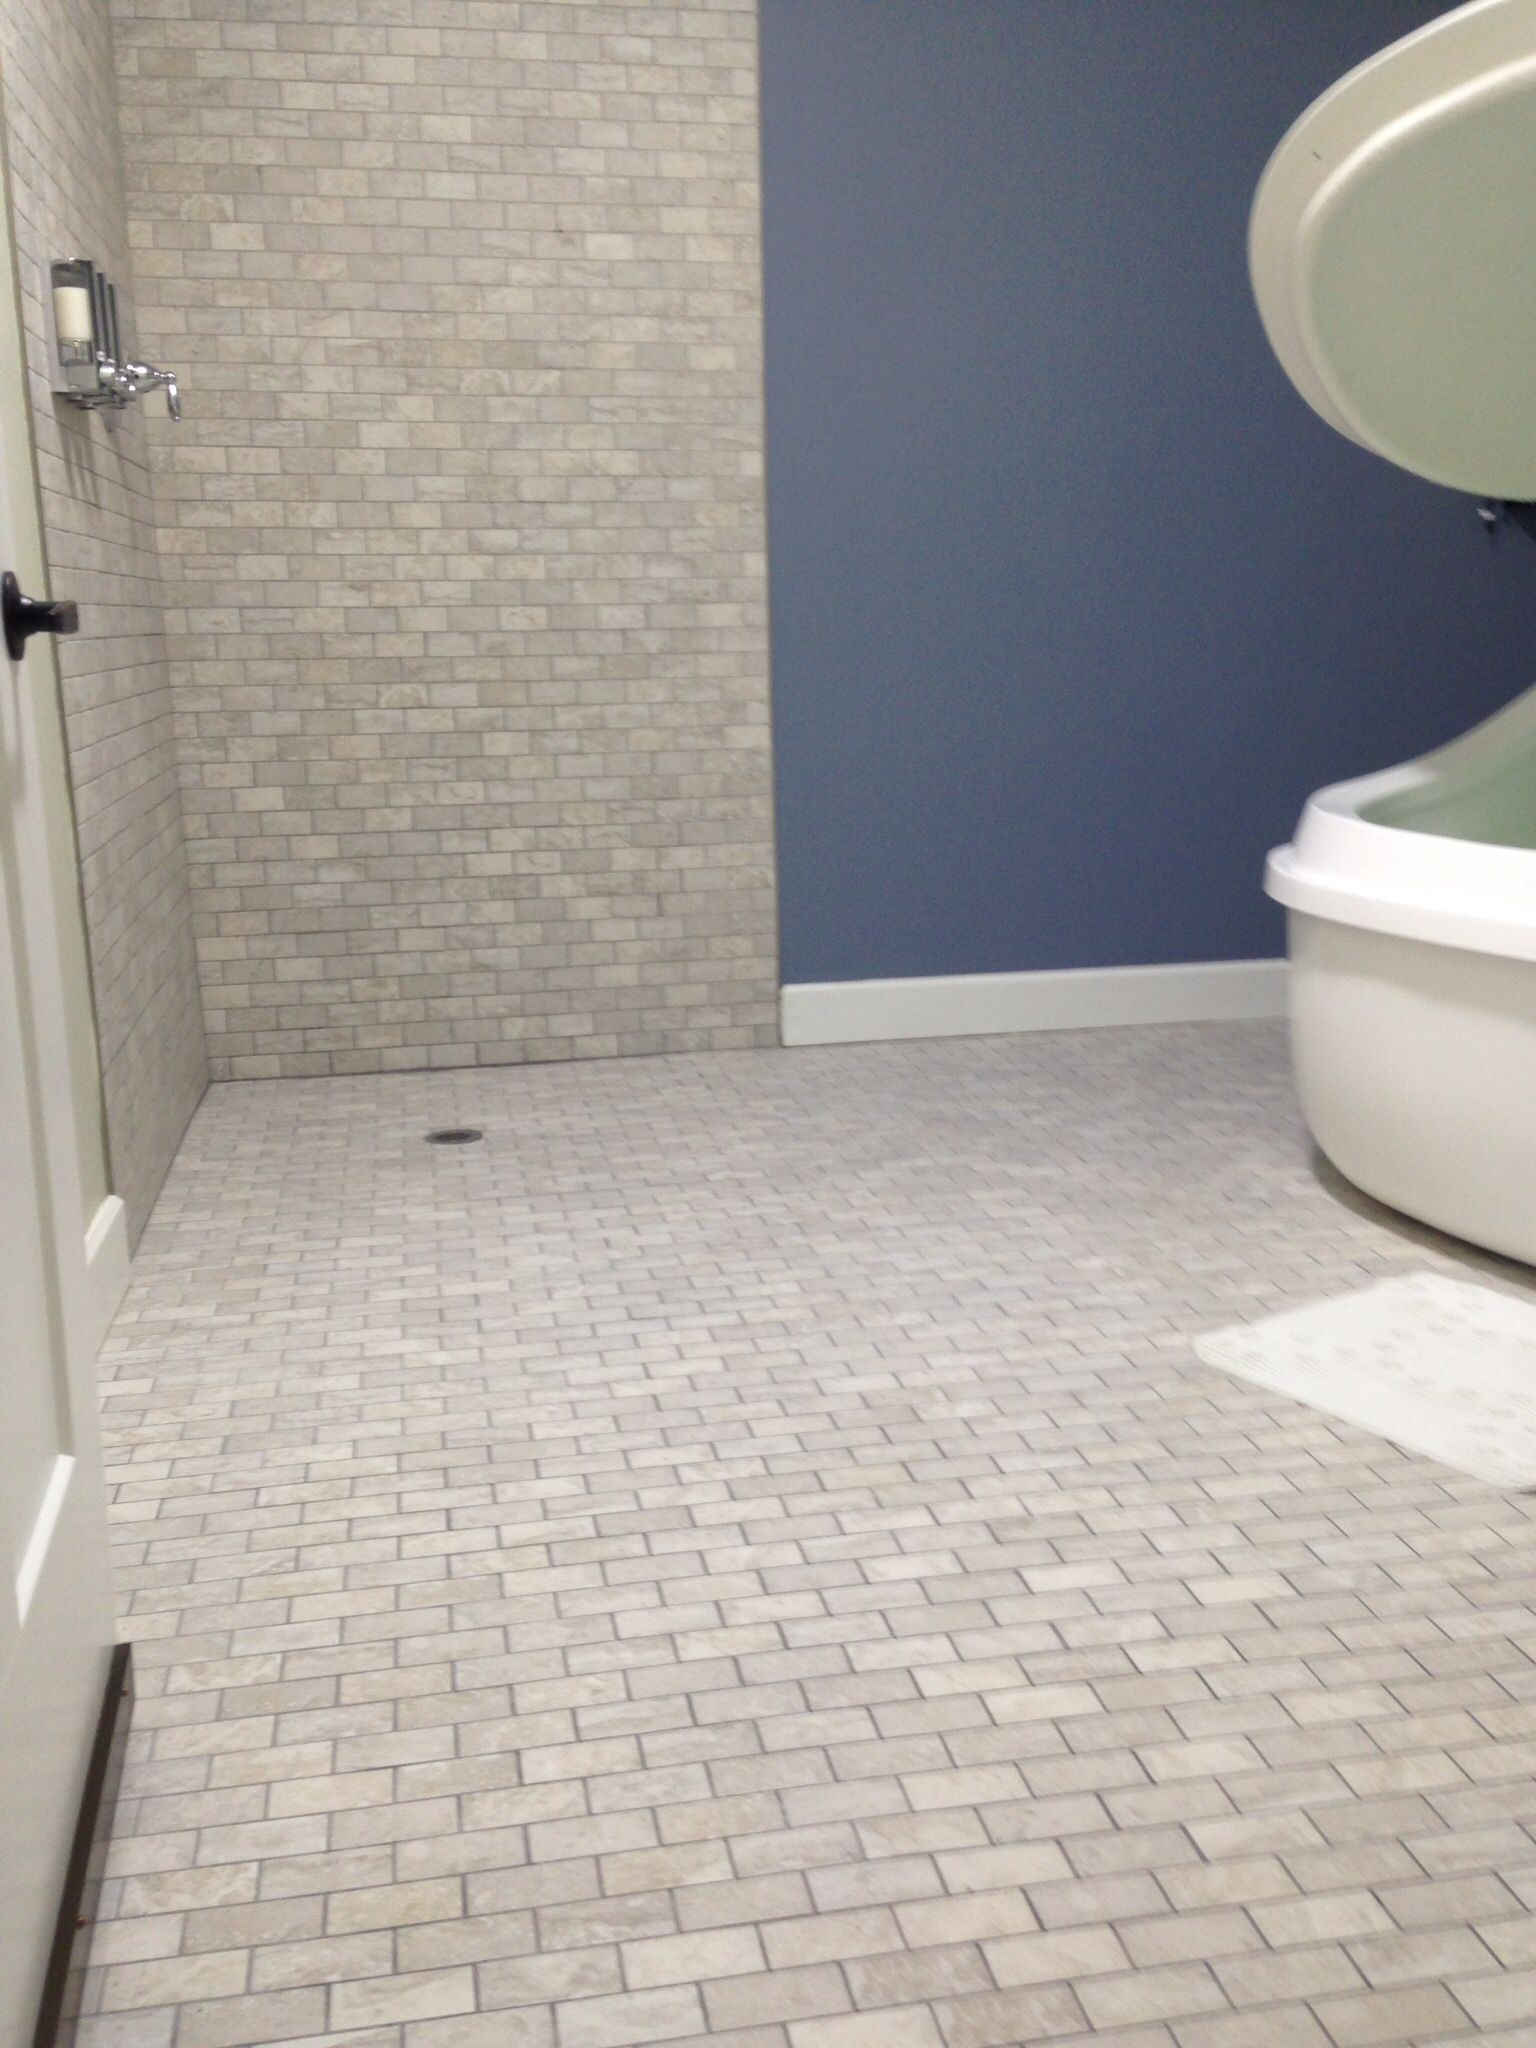 Daltile Exquisite Eq11 Chantilly 2x4 Mosaic Daltile In